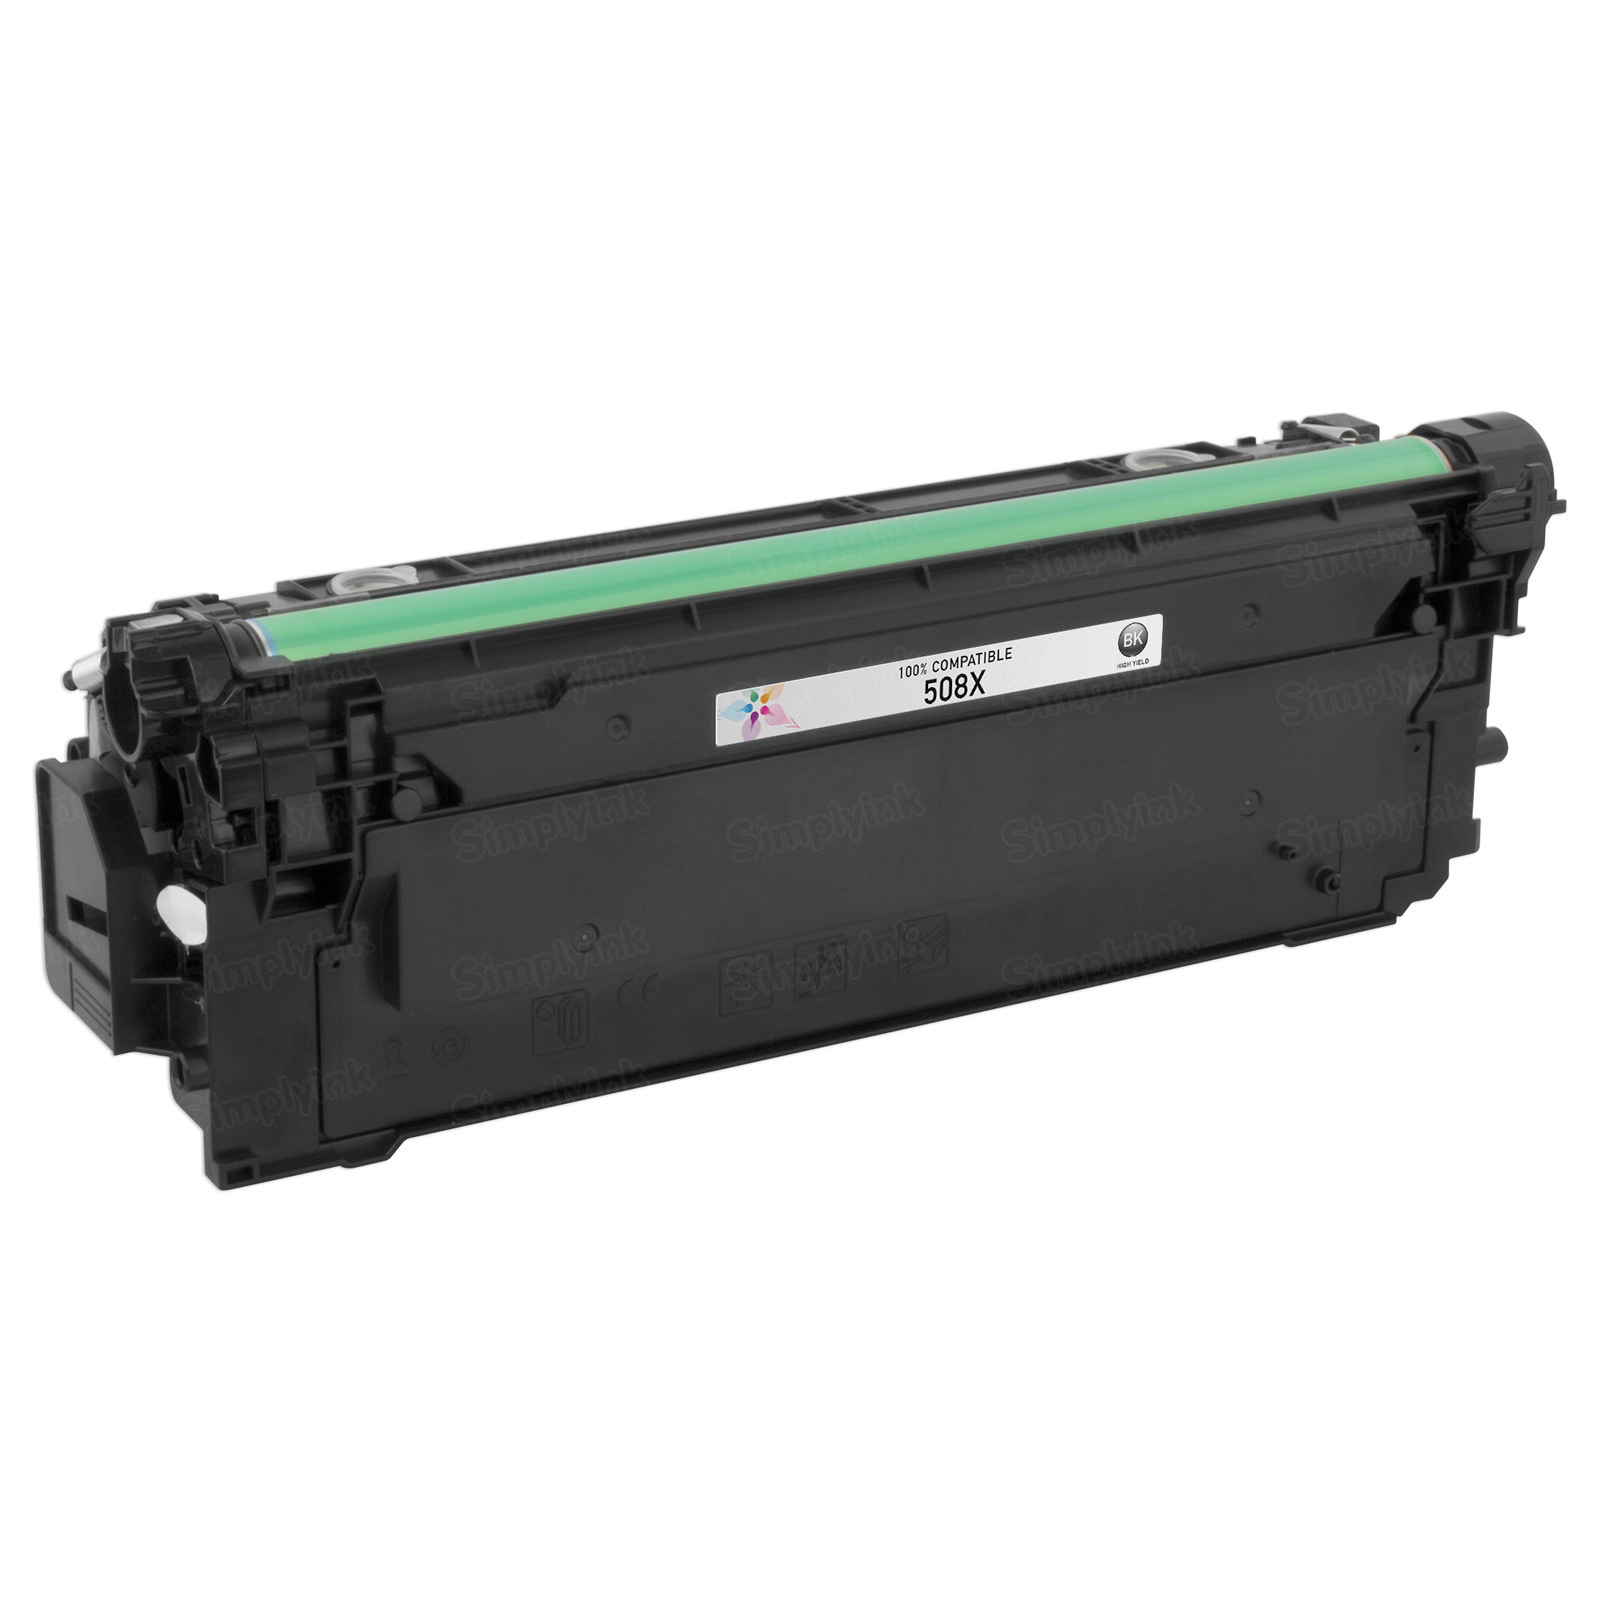 Replacement HY Black Toner for HP 508X